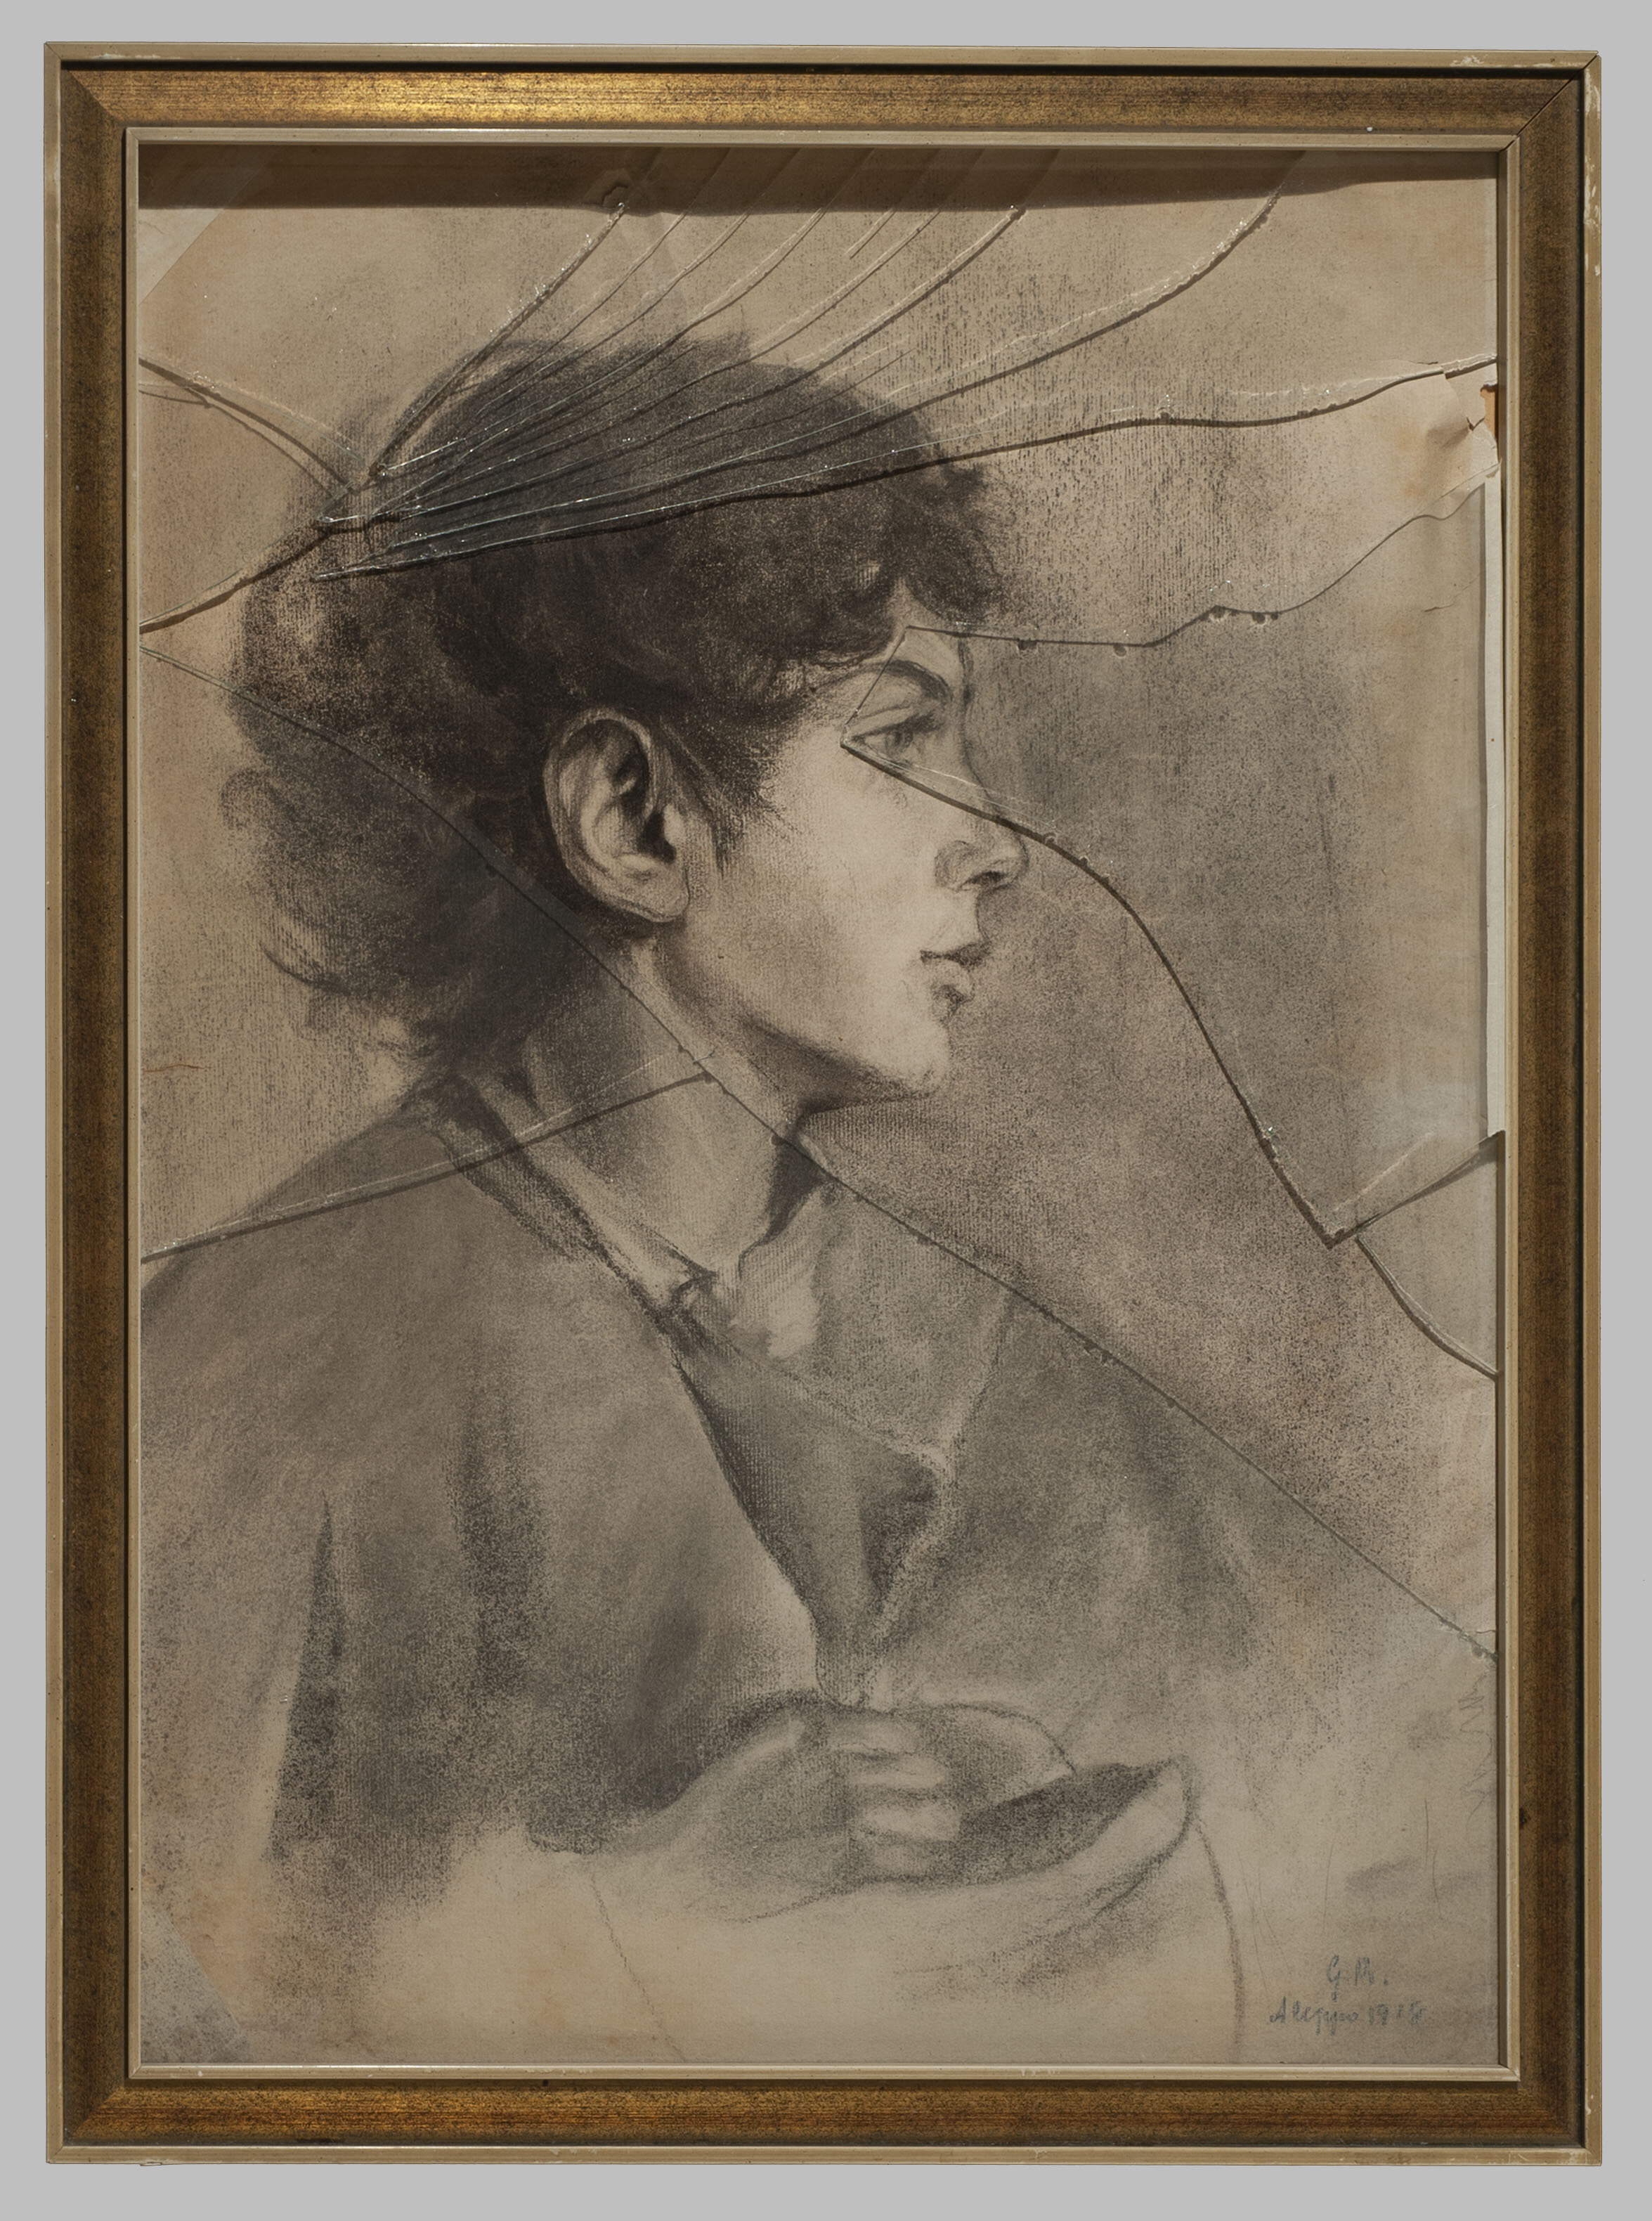 1910 charcoal portrait with surface damage from broken glass frame